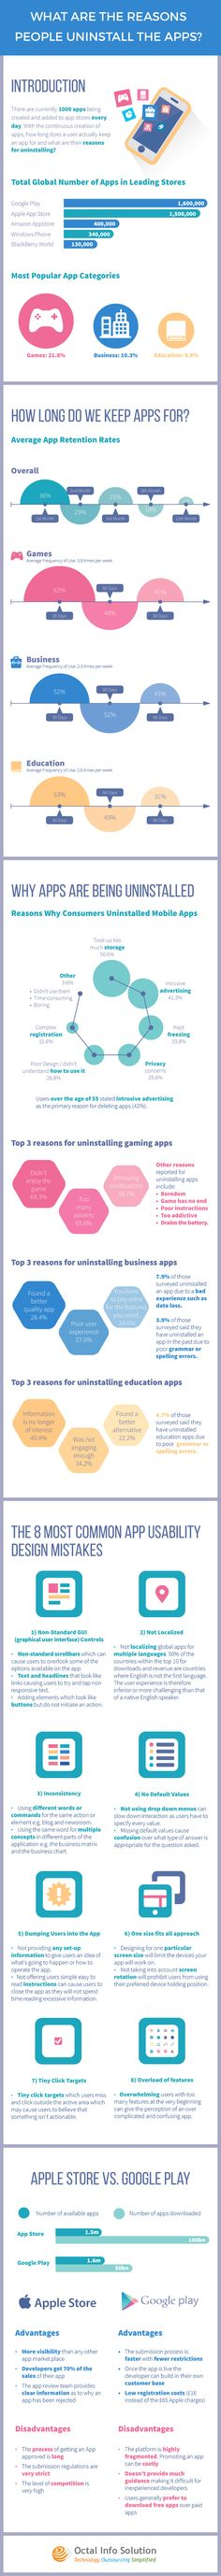 Understand the reasons why people uninstall the application via info-graphic.